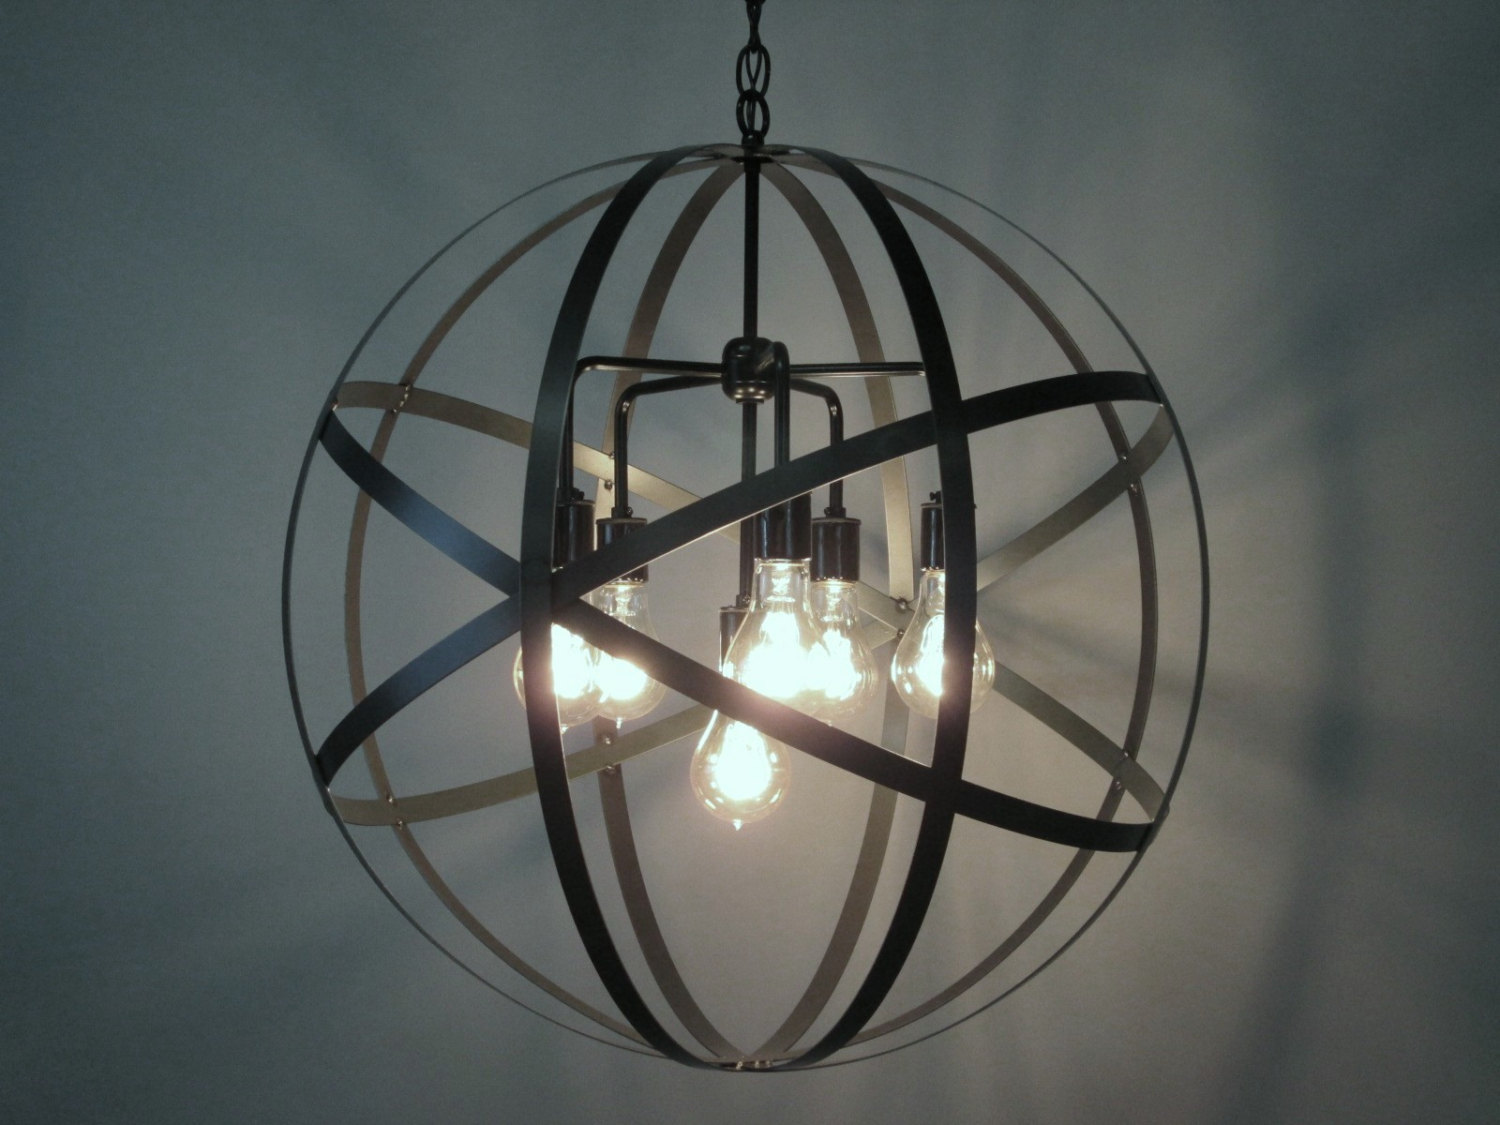 Elegant sphere chandelier metal orb chandelier with interesting Cheap Price for your Home Lighting